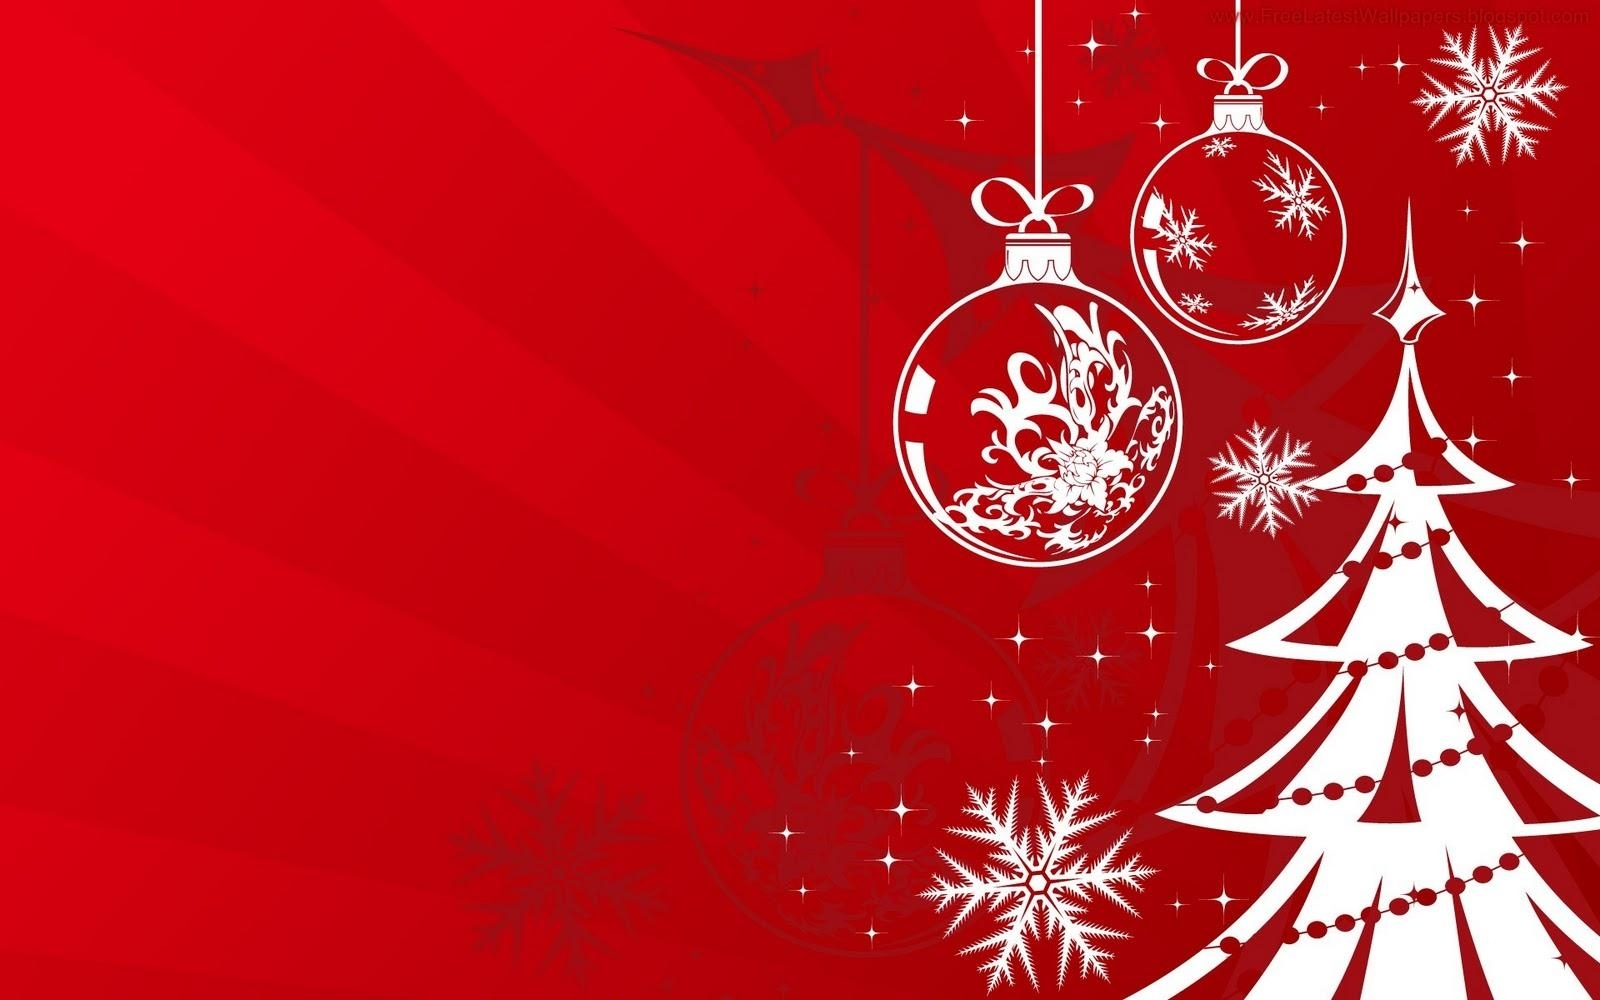 10 top happy holidays wallpapers desktop full hd 1920×1080 for pc